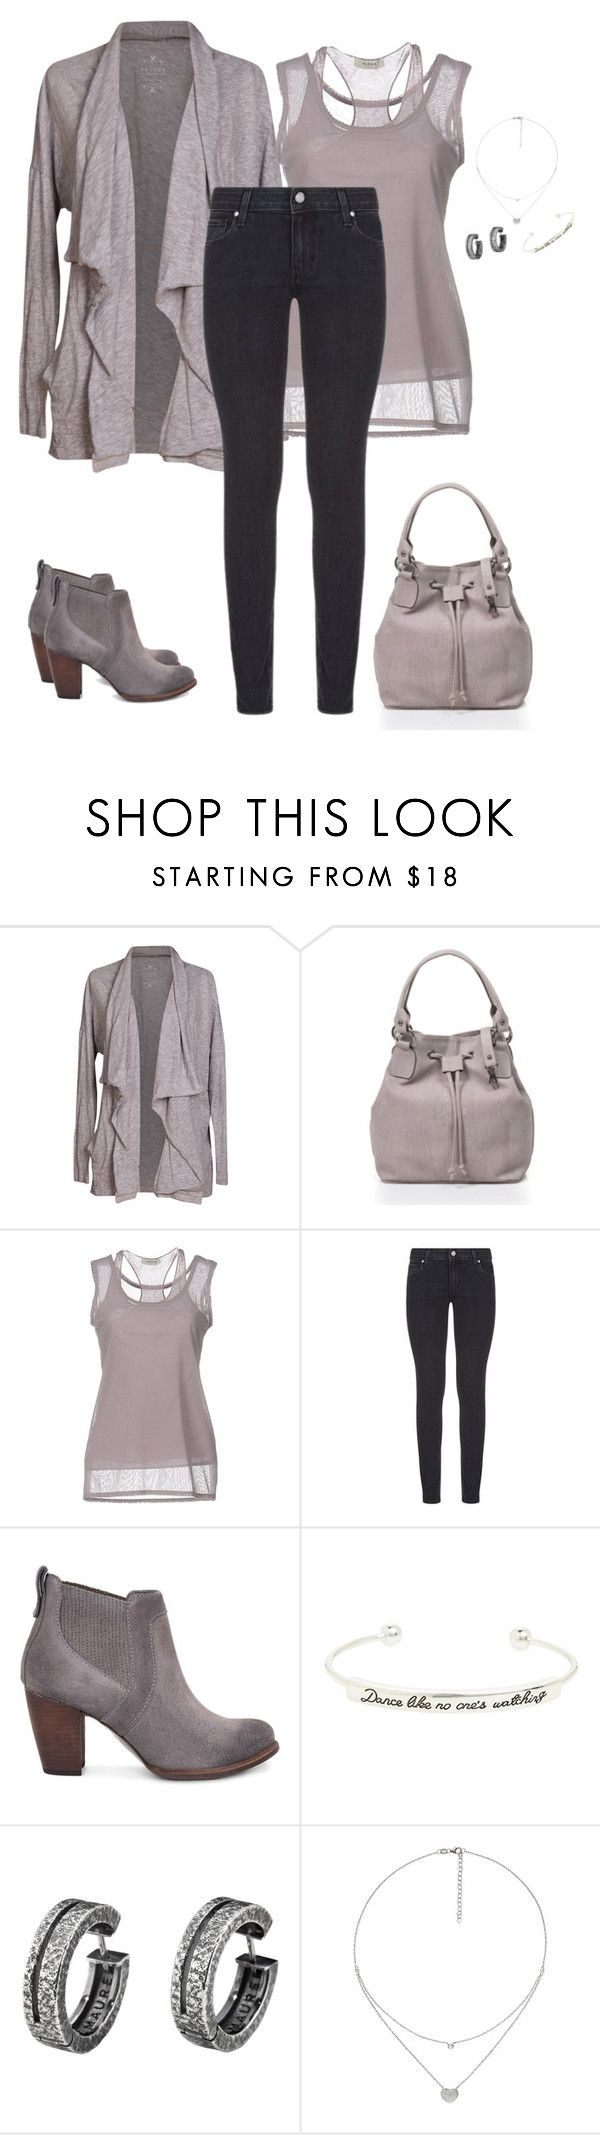 """Untitled #296"" by amea412 ❤ liked on Polyvore featuring Velvet by Graham & Spencer, Alpha Studio, Paige Denim, UGG, Topshop and Folli Follie"